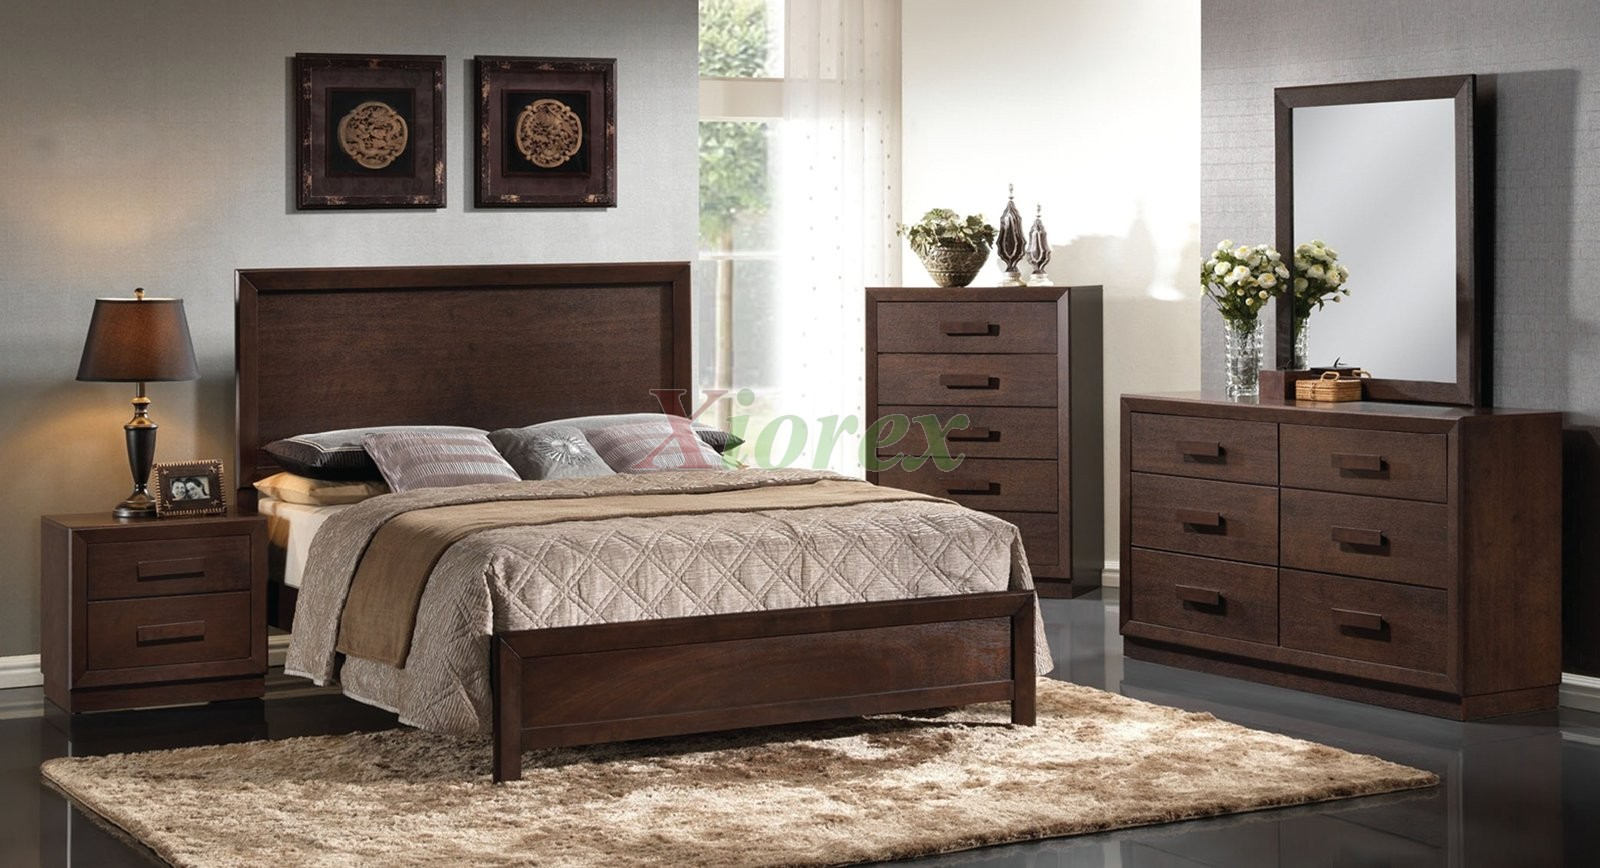 Contemporary Platform Bedroom Furniture Set 150 Xiorex Not Available